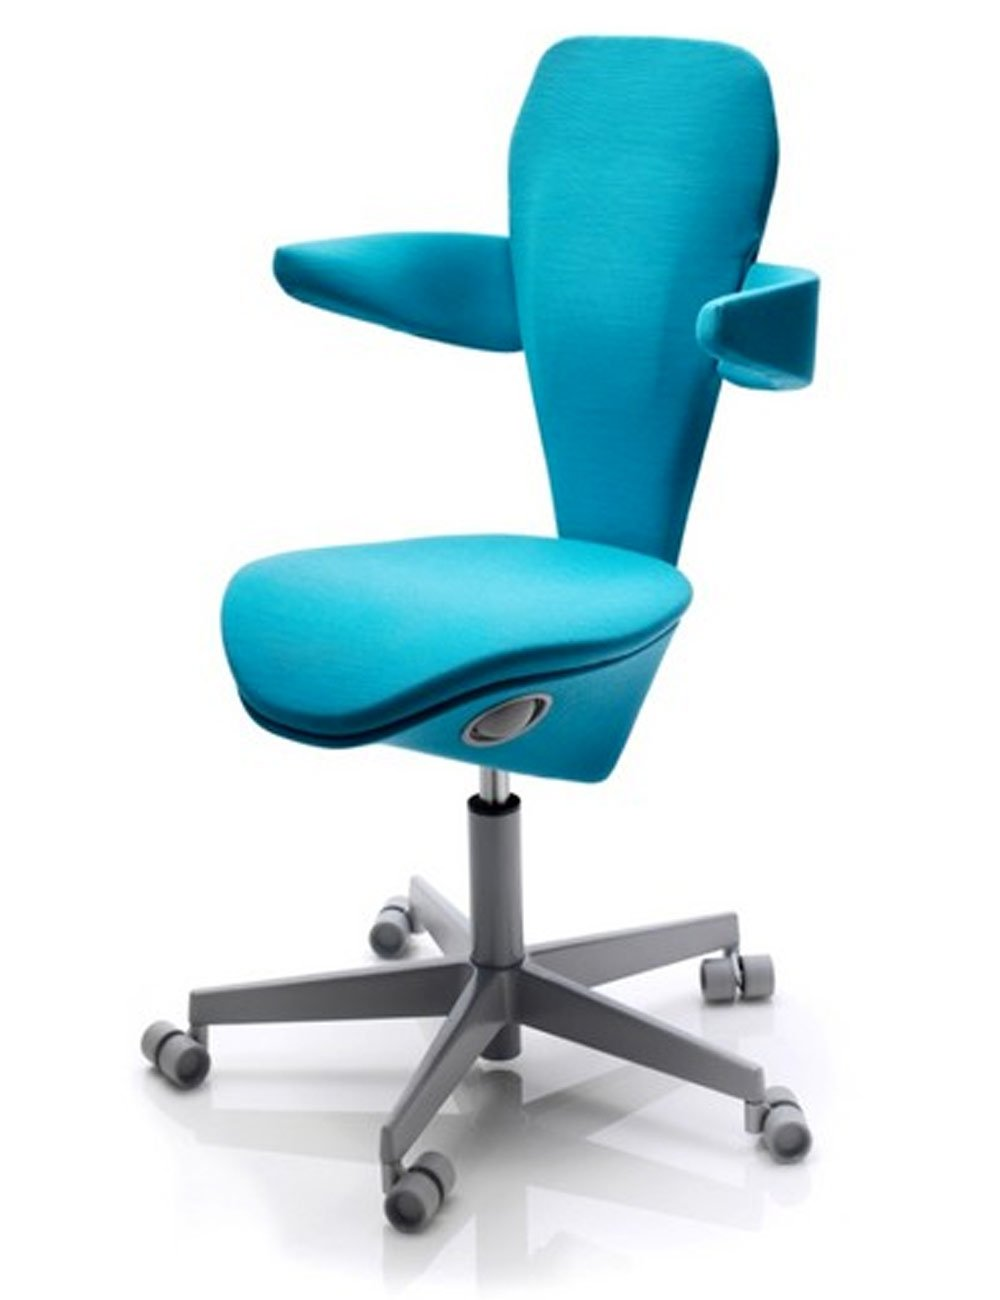 brand new e0701 cf411 LEI OFFICE CHAIR DESIGNED SPECIFICALLY FOR WOMEN